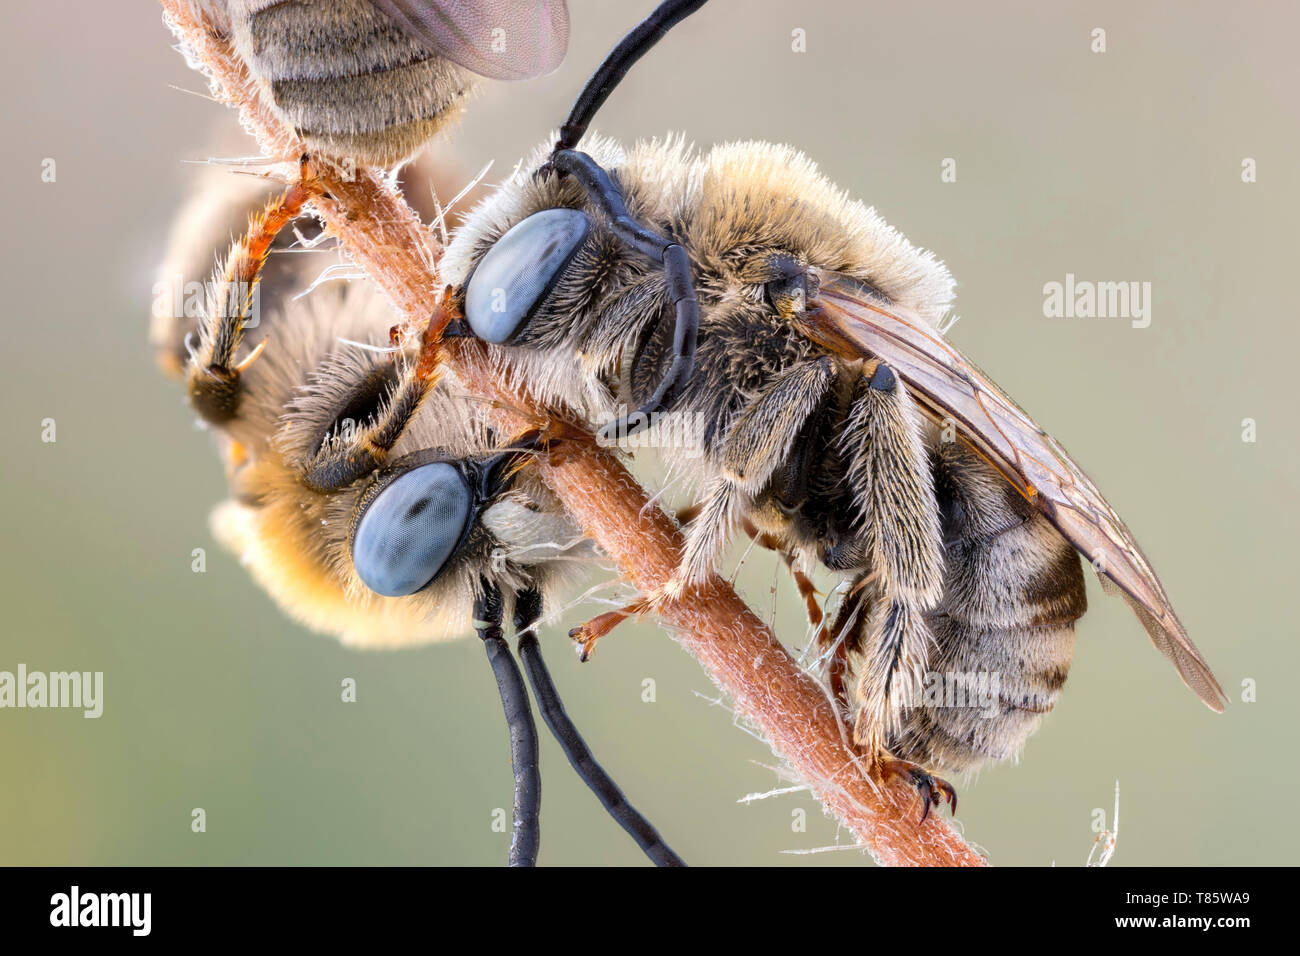 Long horned bees - Stock Image